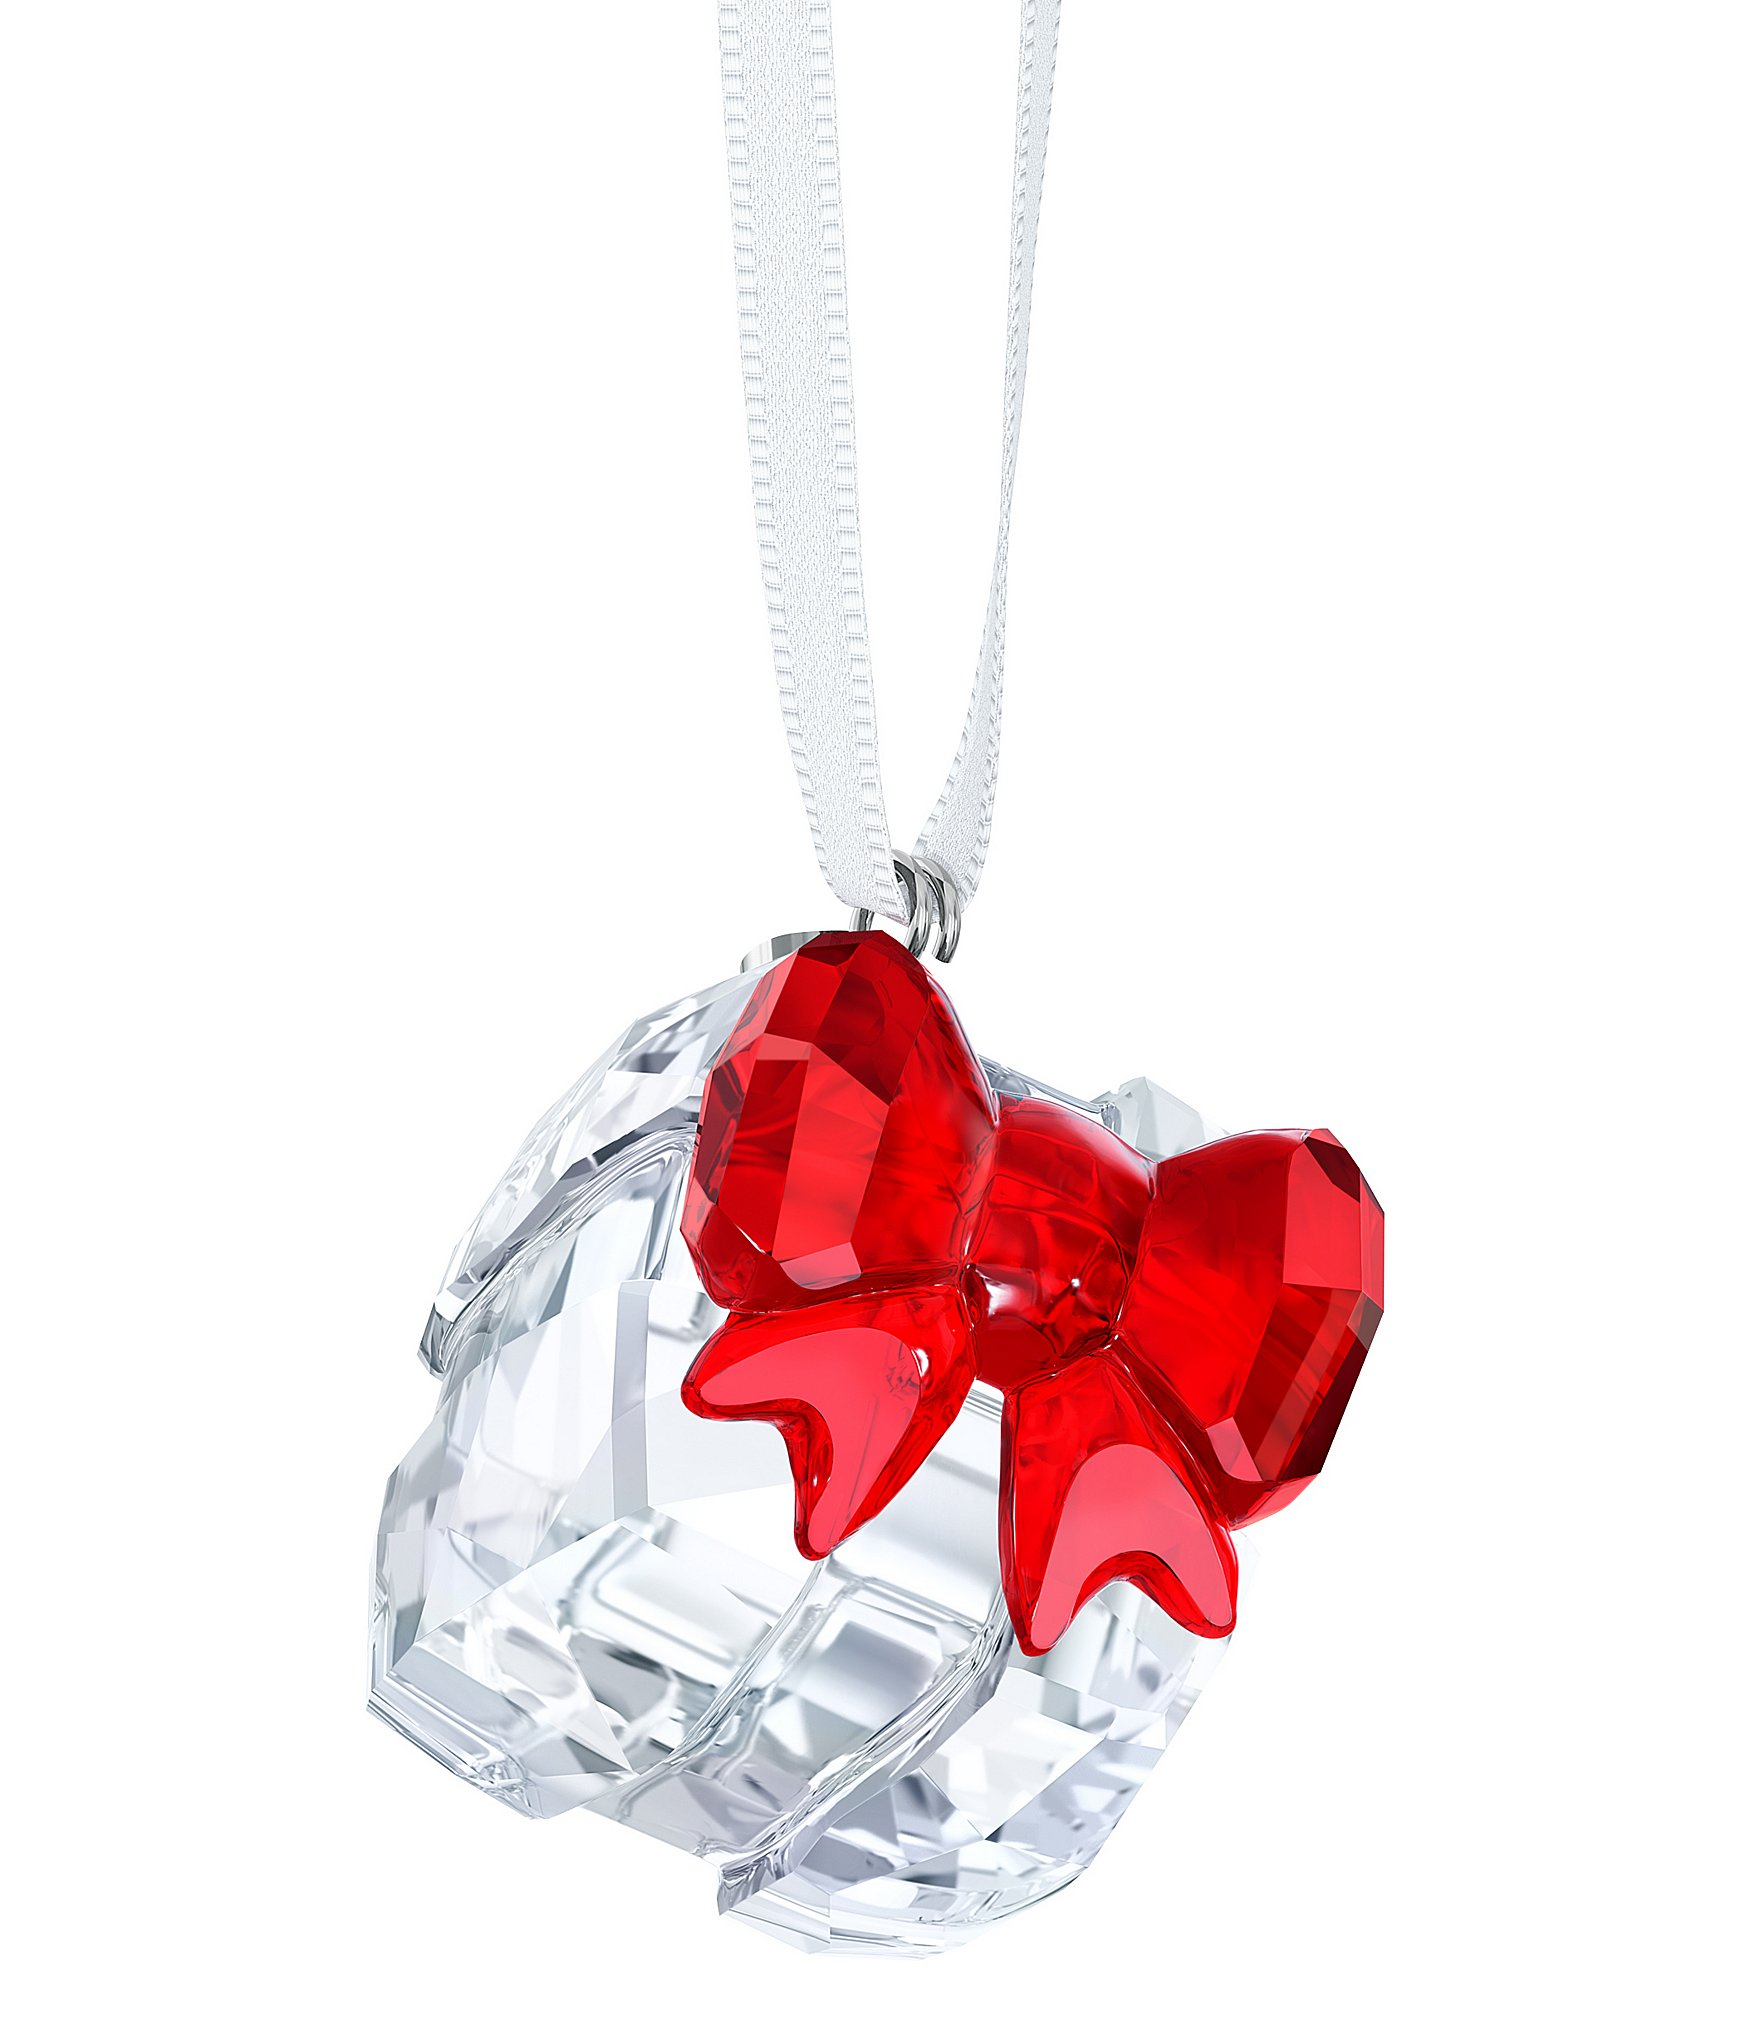 Swarovski crystal christmas gift ornament dillards for Christmas ornament sale clearance